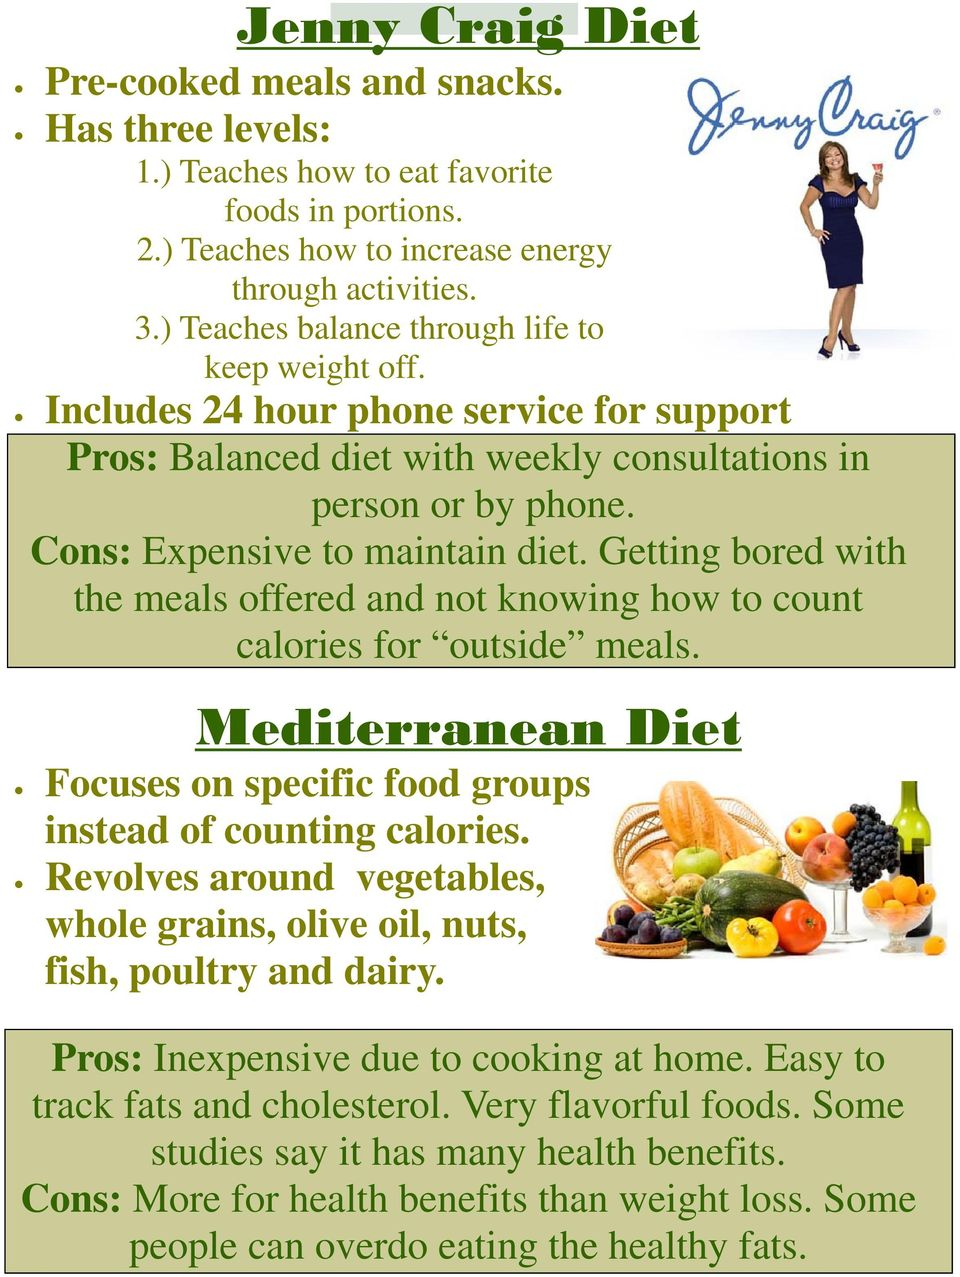 Getting bored with the meals offered and not knowing how to count calories for outside meals. Mediterranean Diet Focuses on specific food groups instead of counting calories.